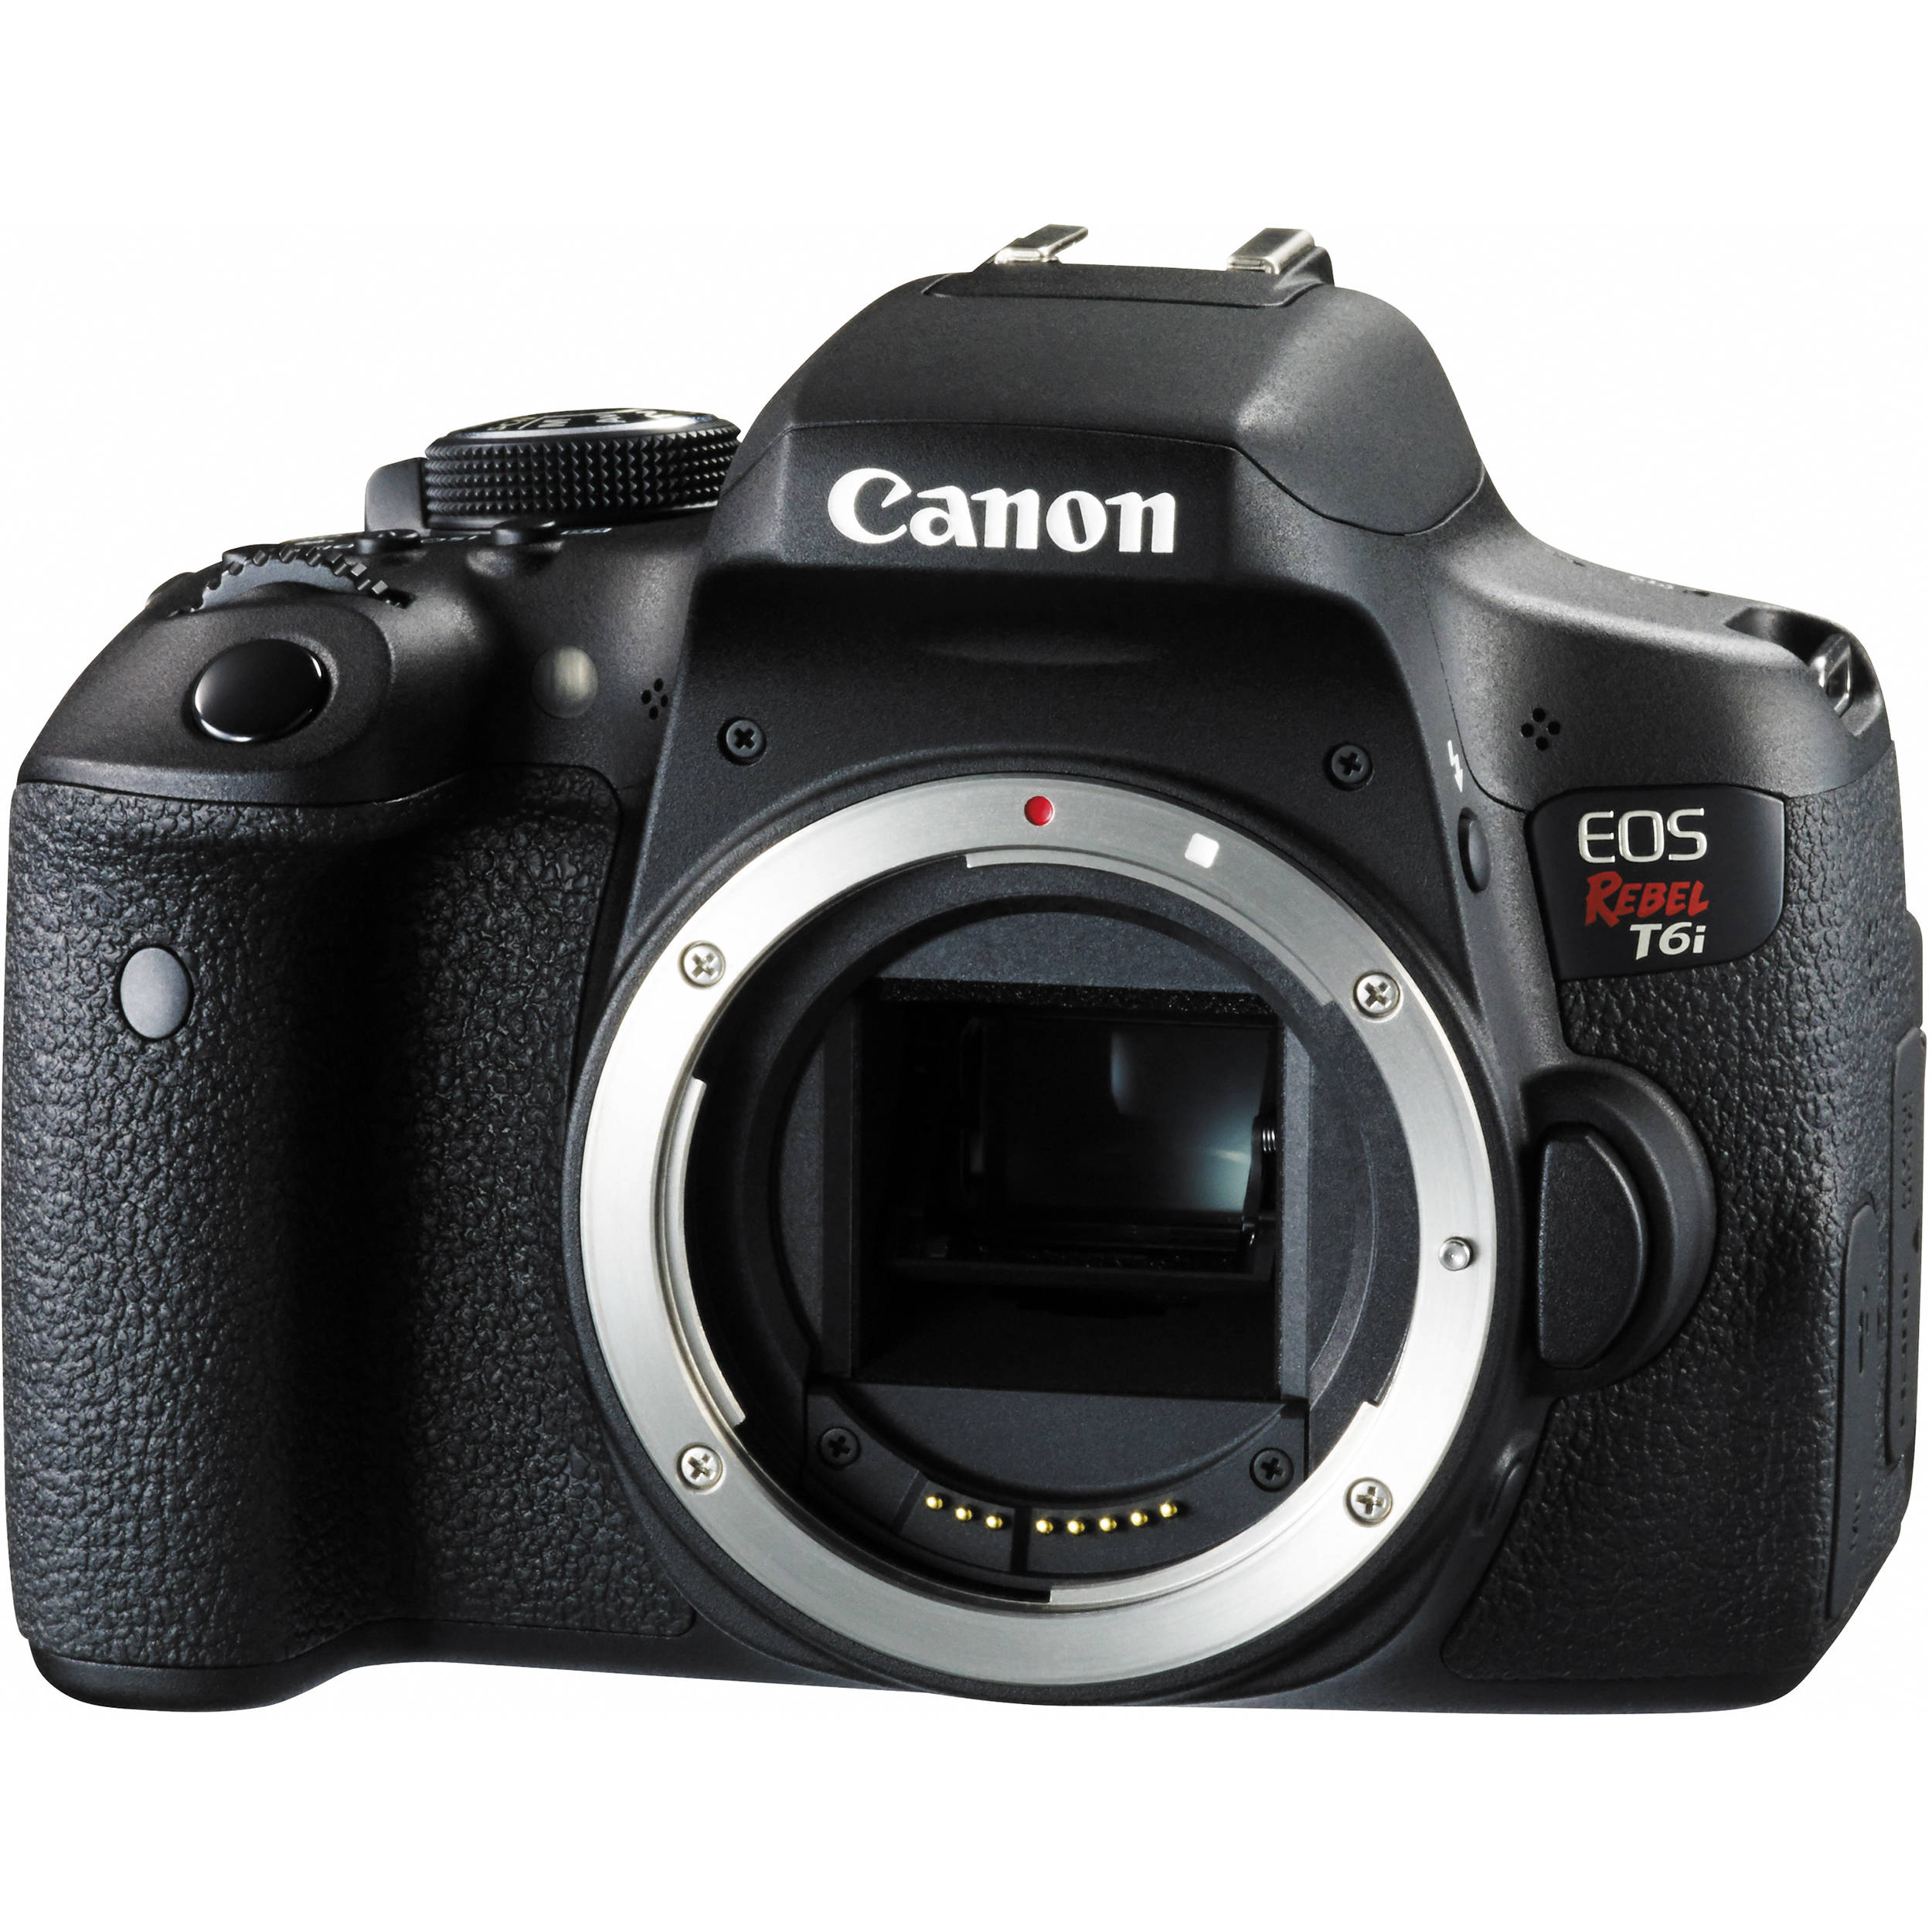 Canon EOS Rebel T6i (750D) Underwater Housings